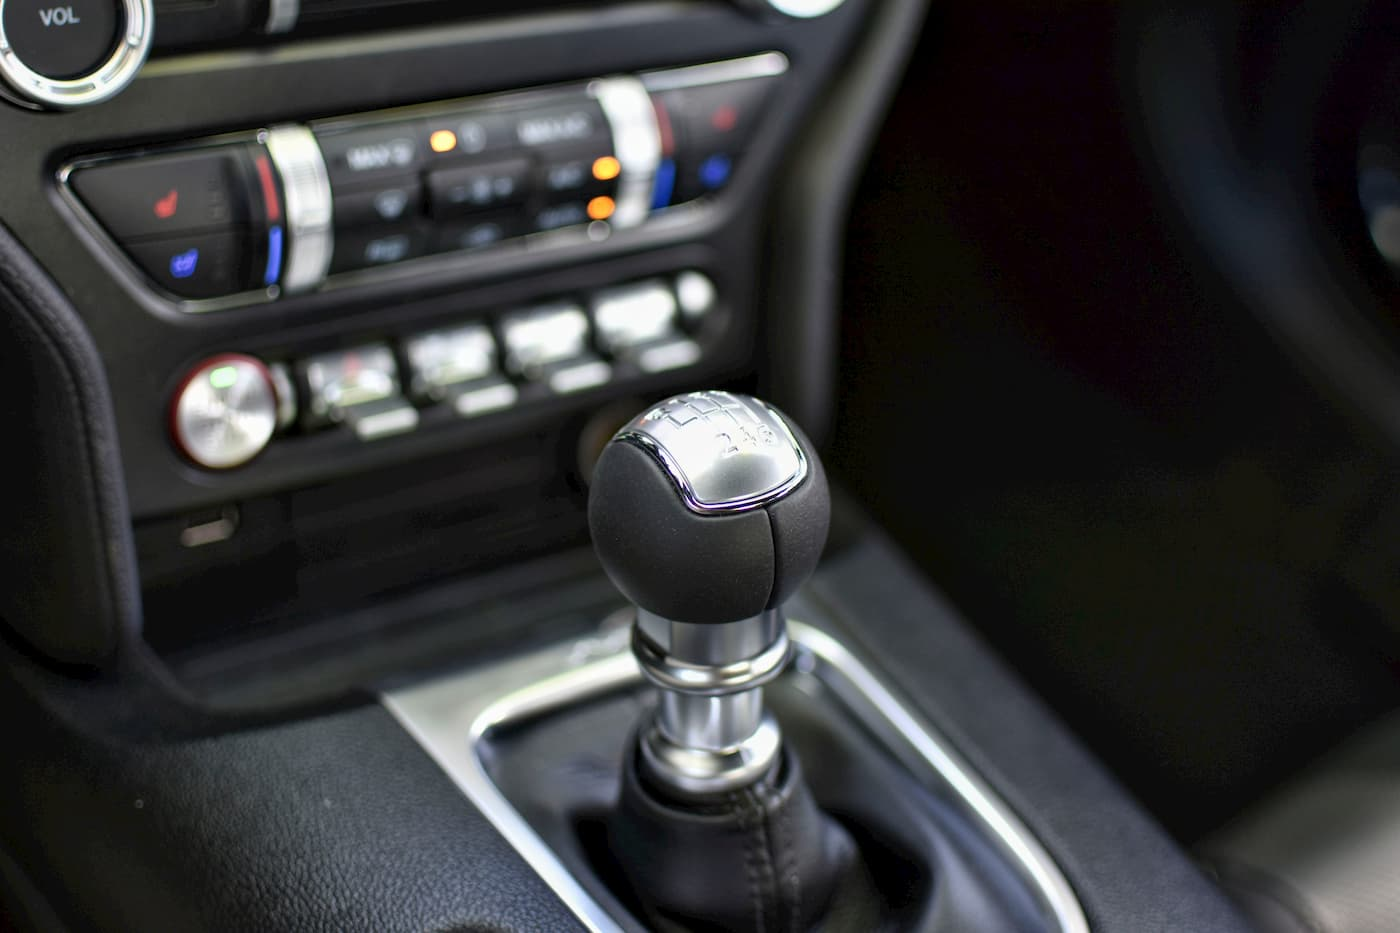 2020 Ford Mustang Gear Shift Stick